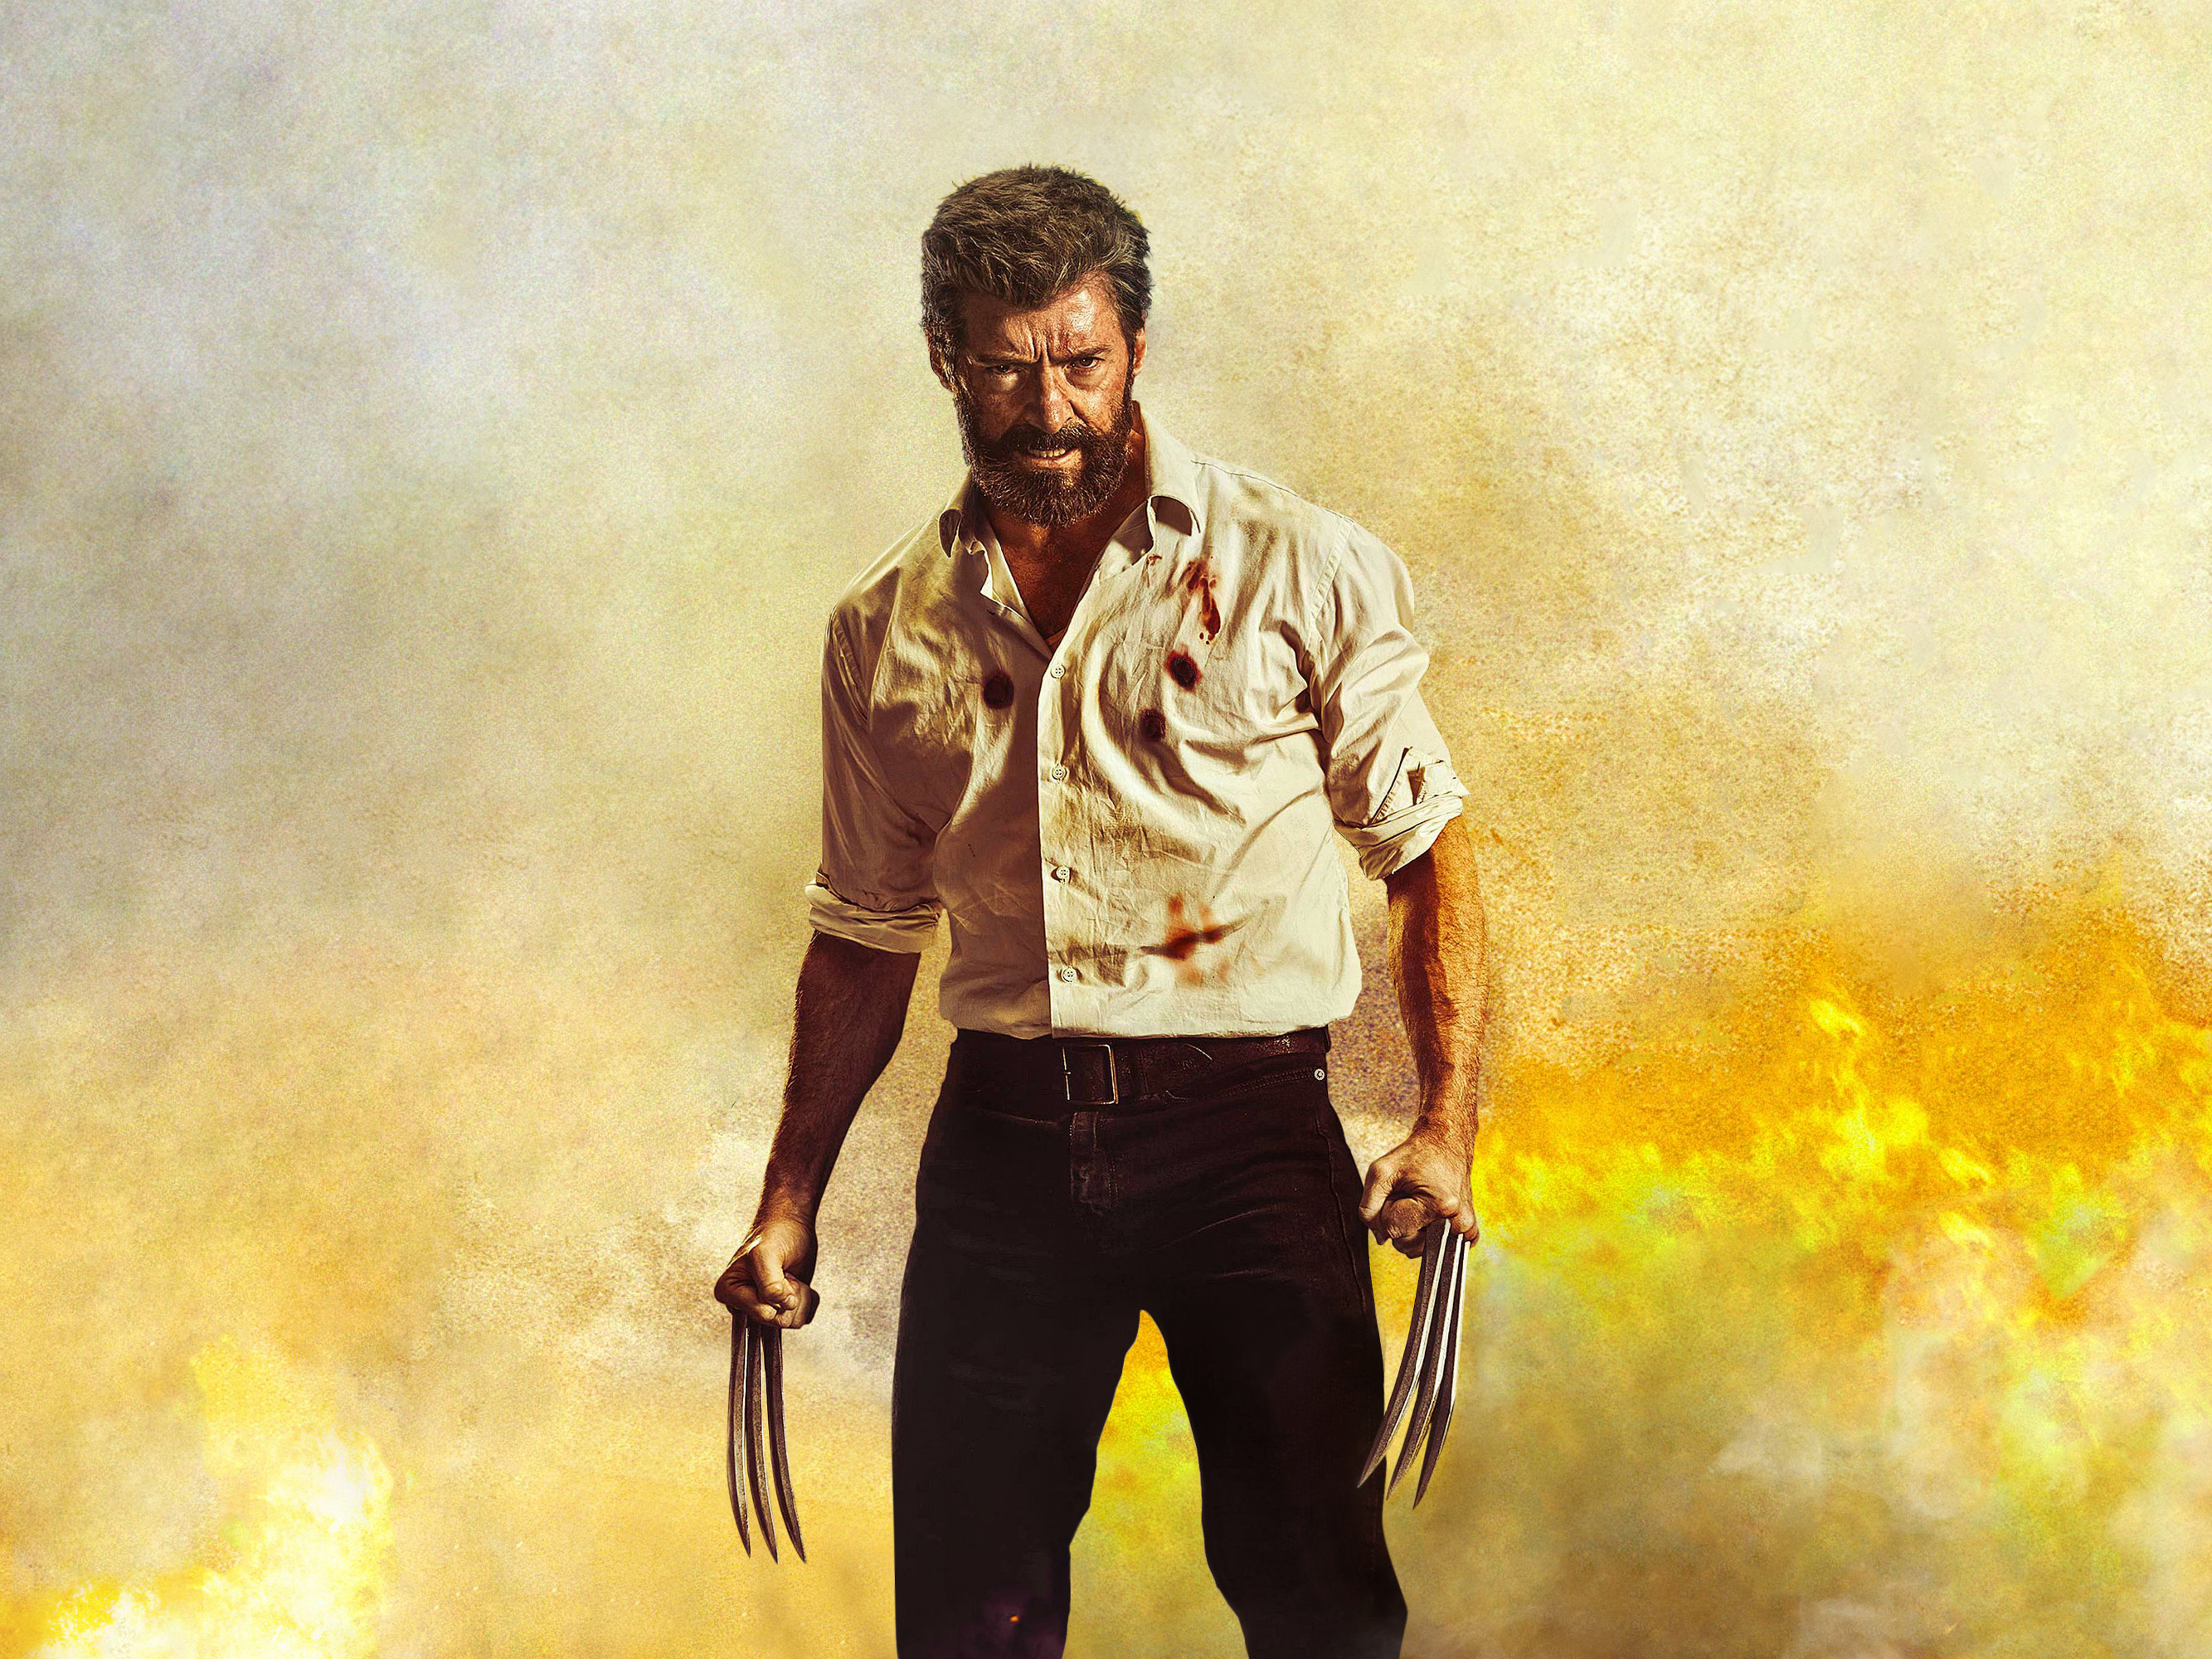 Res: 2667x2000, Hugh Jackman Wolverine Wallpapers Full Hd For Free Wallpaper